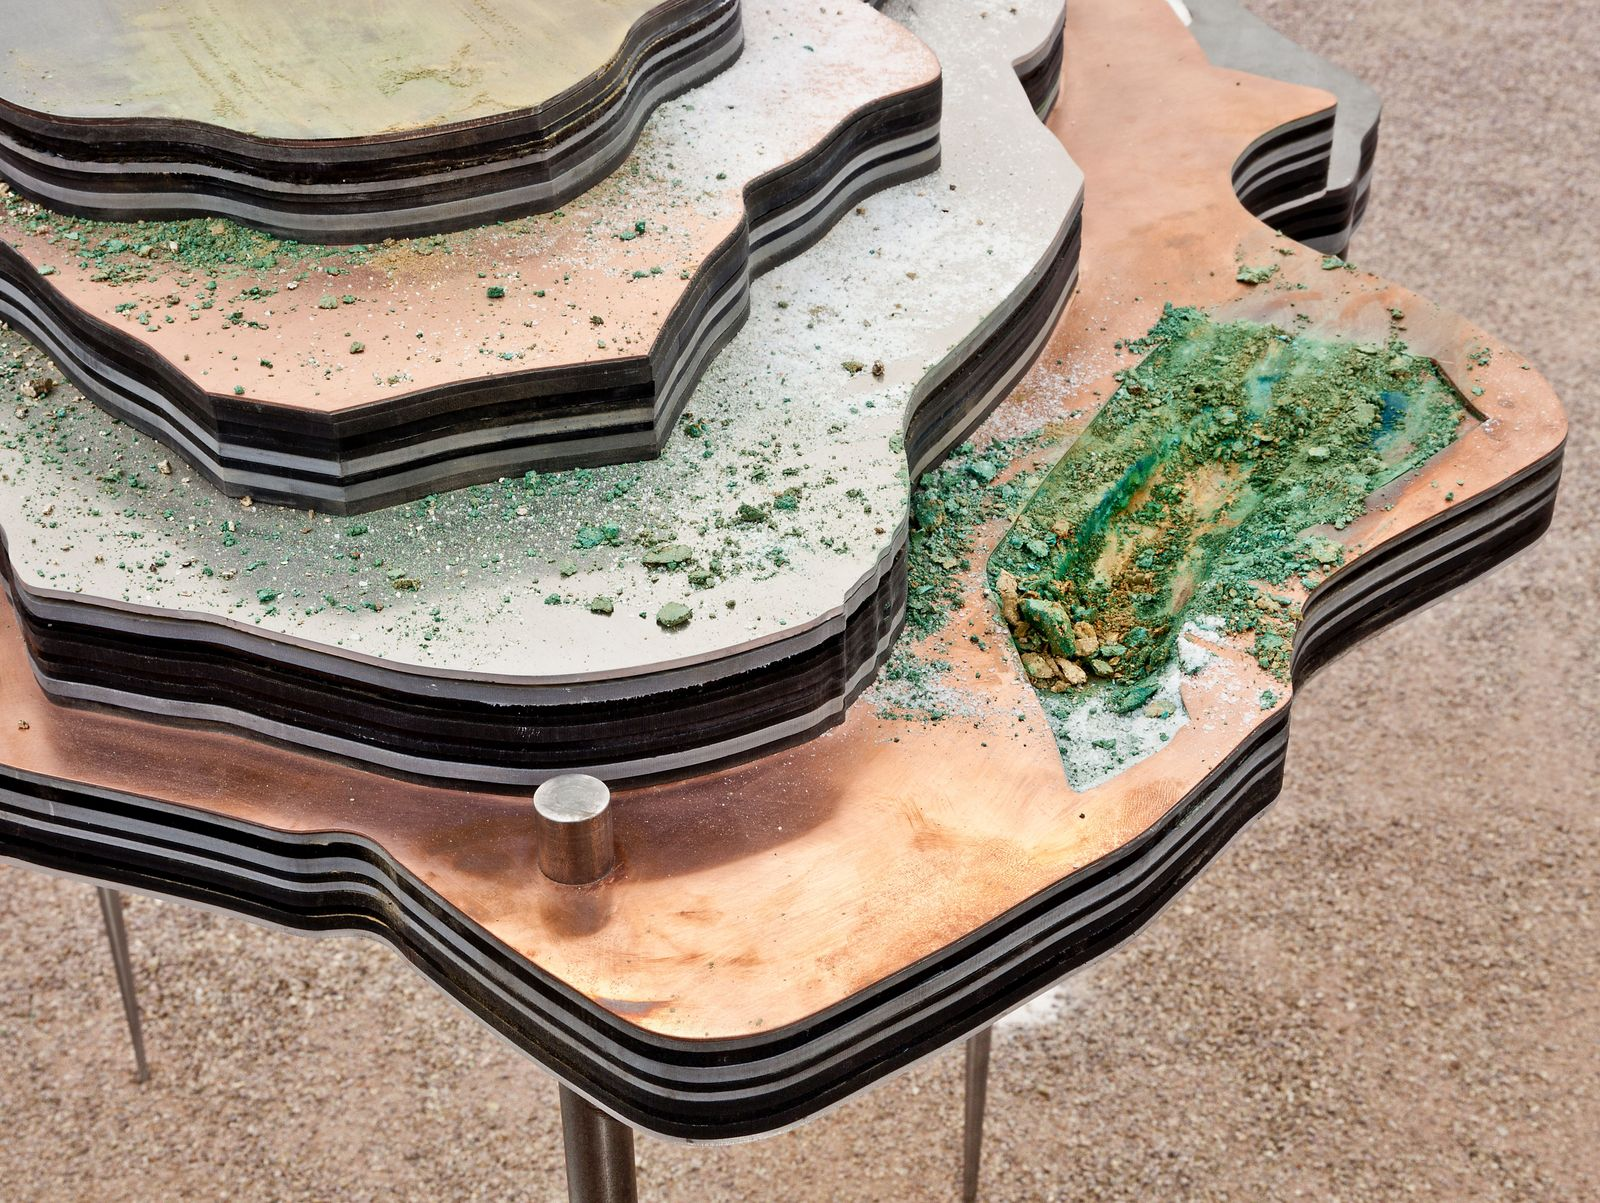 Ausstellung/ Otobong Nkanga: There's No Such Thing as Solid Ground